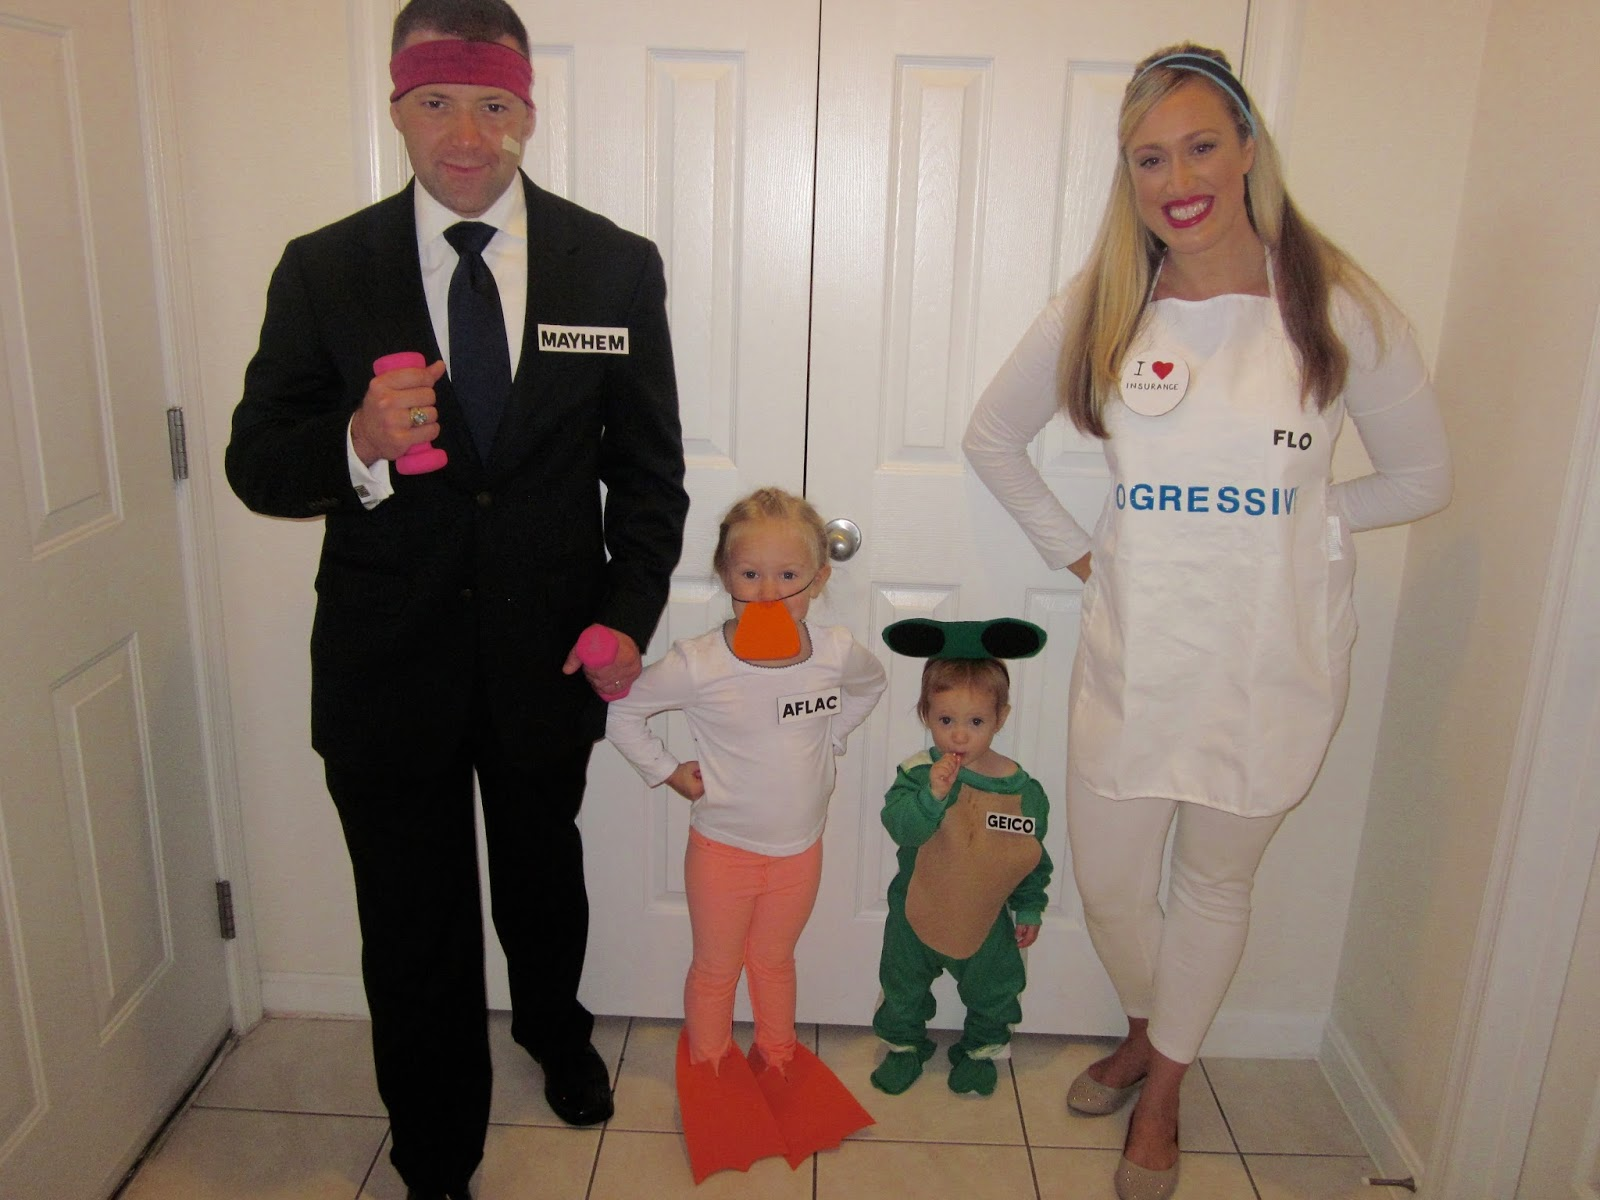 COSTUME WEEK DAY 2 Insurance Family  sc 1 st  The Art of Mediocre Parenting & The Art of Mediocre Parenting: COSTUME WEEK DAY 2: Insurance Family